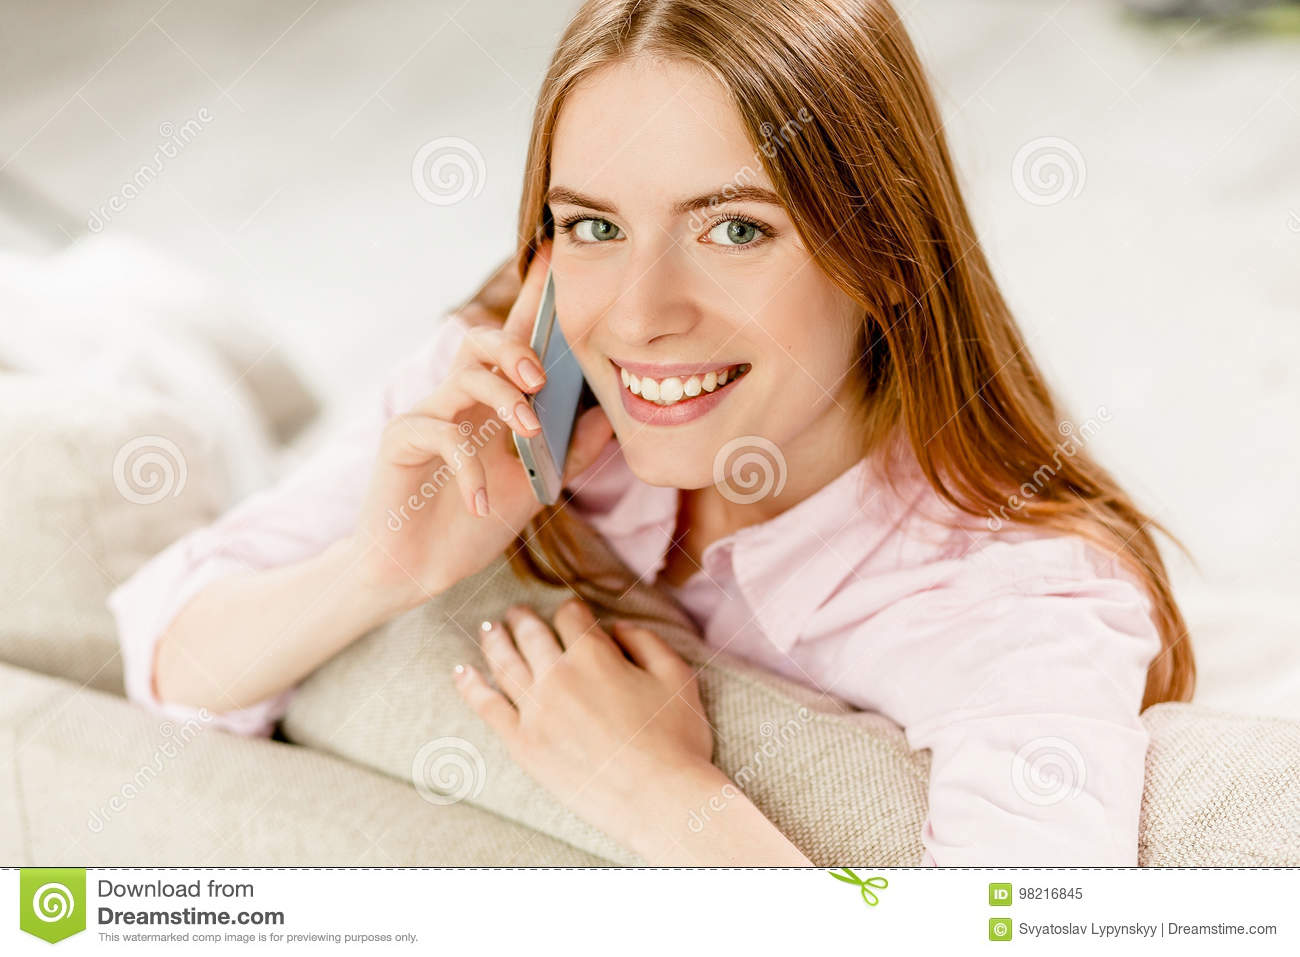 Are Young teen cell phone facial